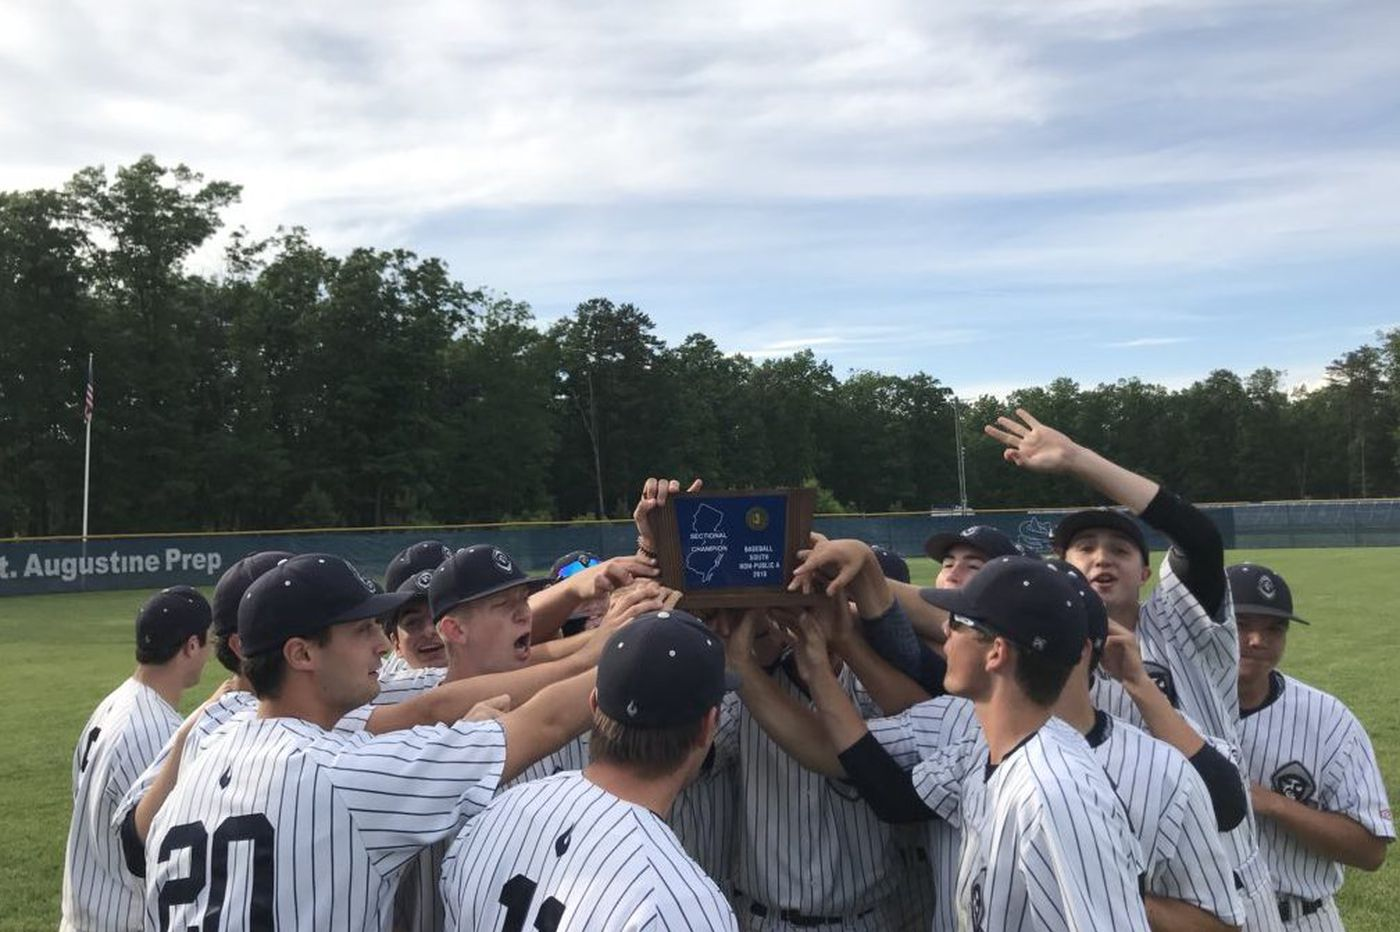 Tuesday's S.J. roundup: St. Augustine wins sectional title behind homers from Nick Lonetto and Kenny Levari